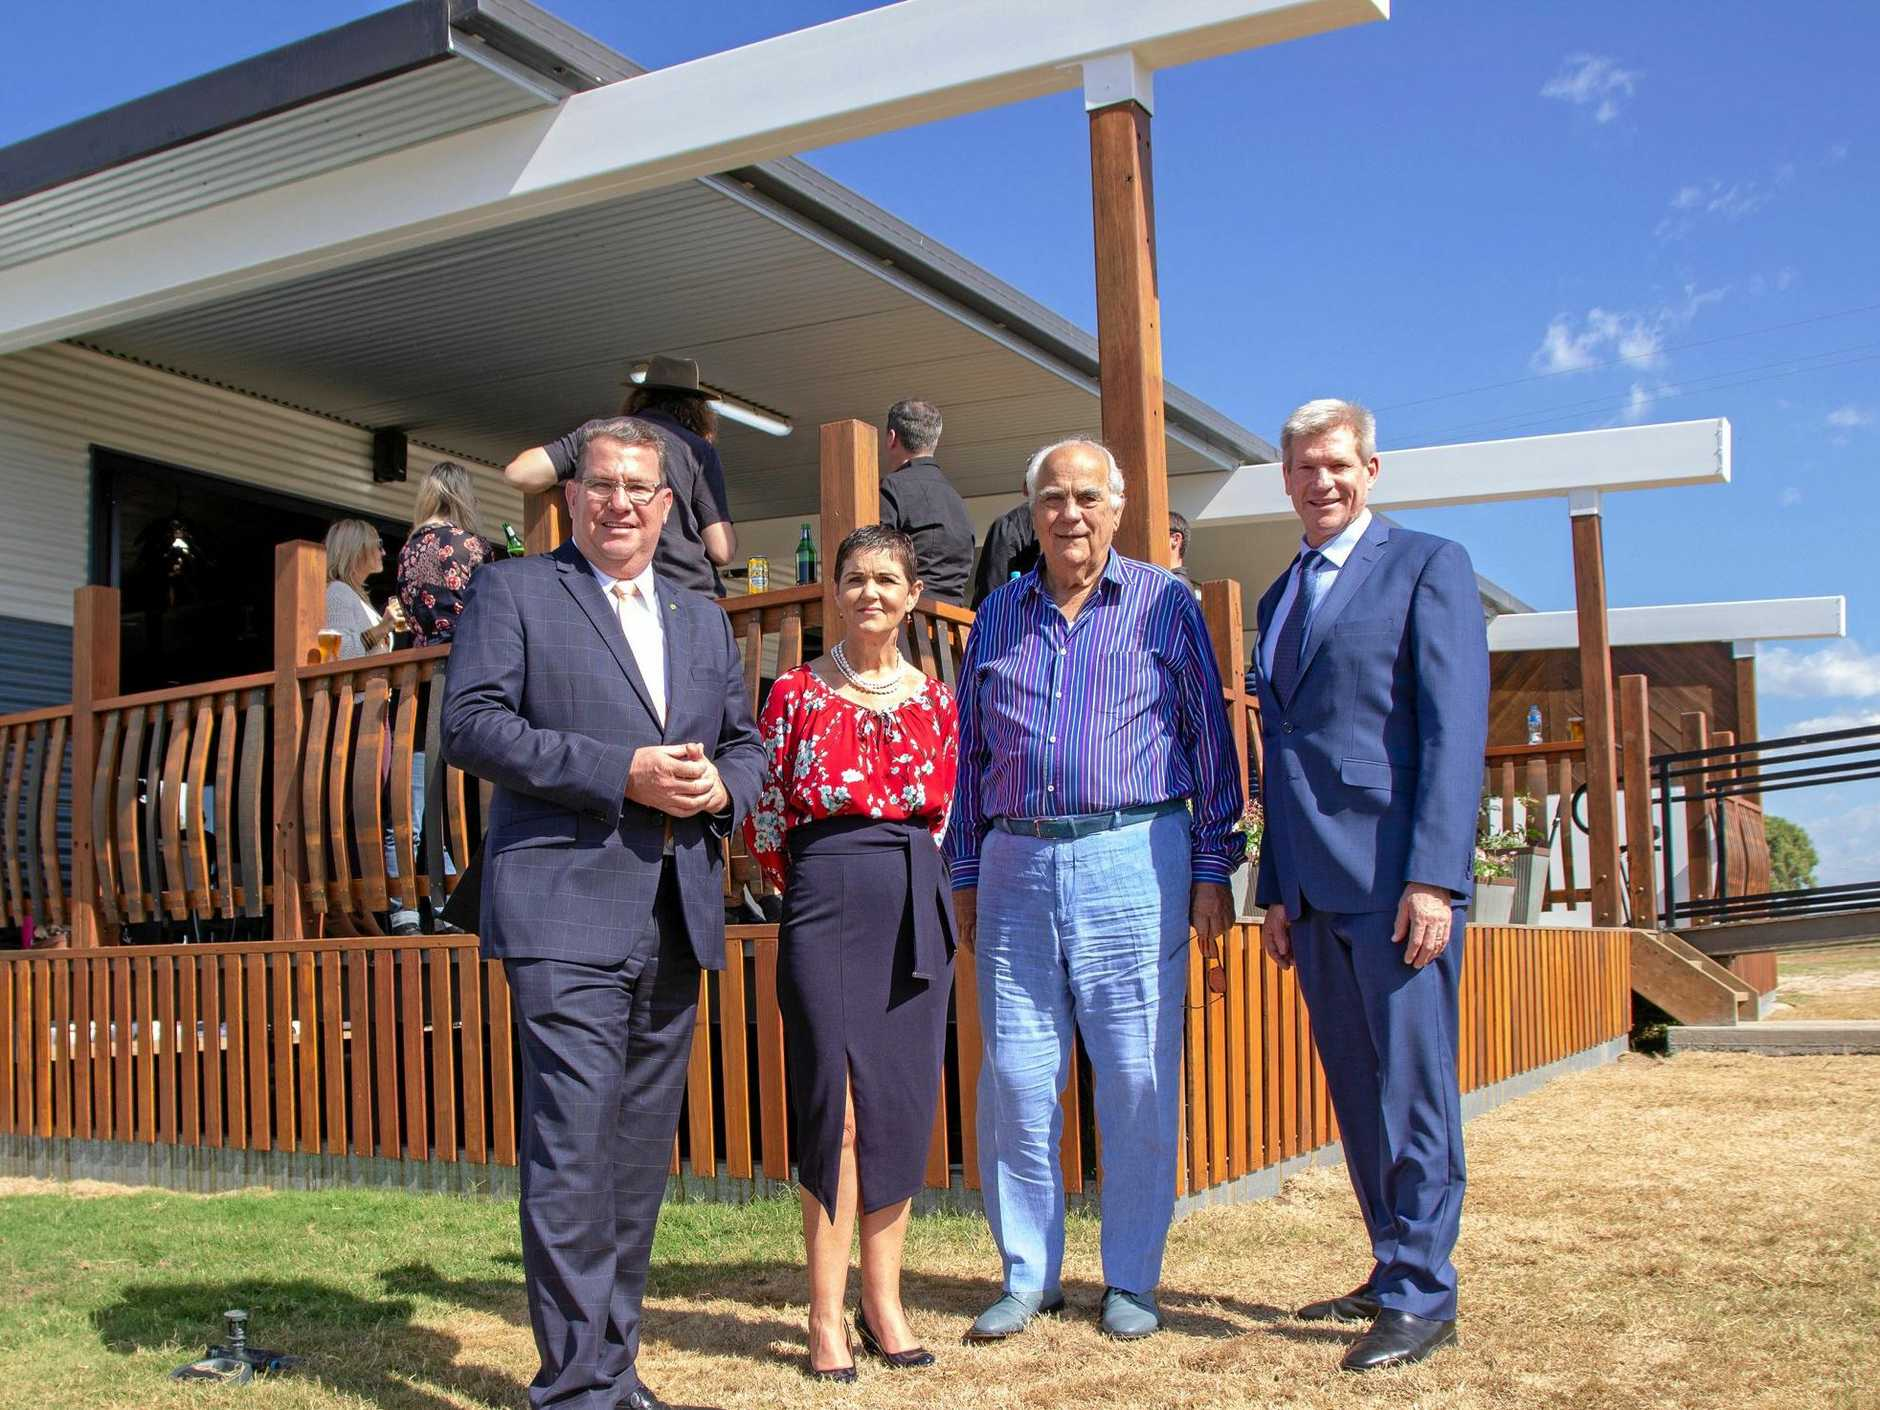 OPEN FOR BUSINESS: The $20 million Grantham Farm Workers' complex was officially opened today and is expecting to fill up within weeks.